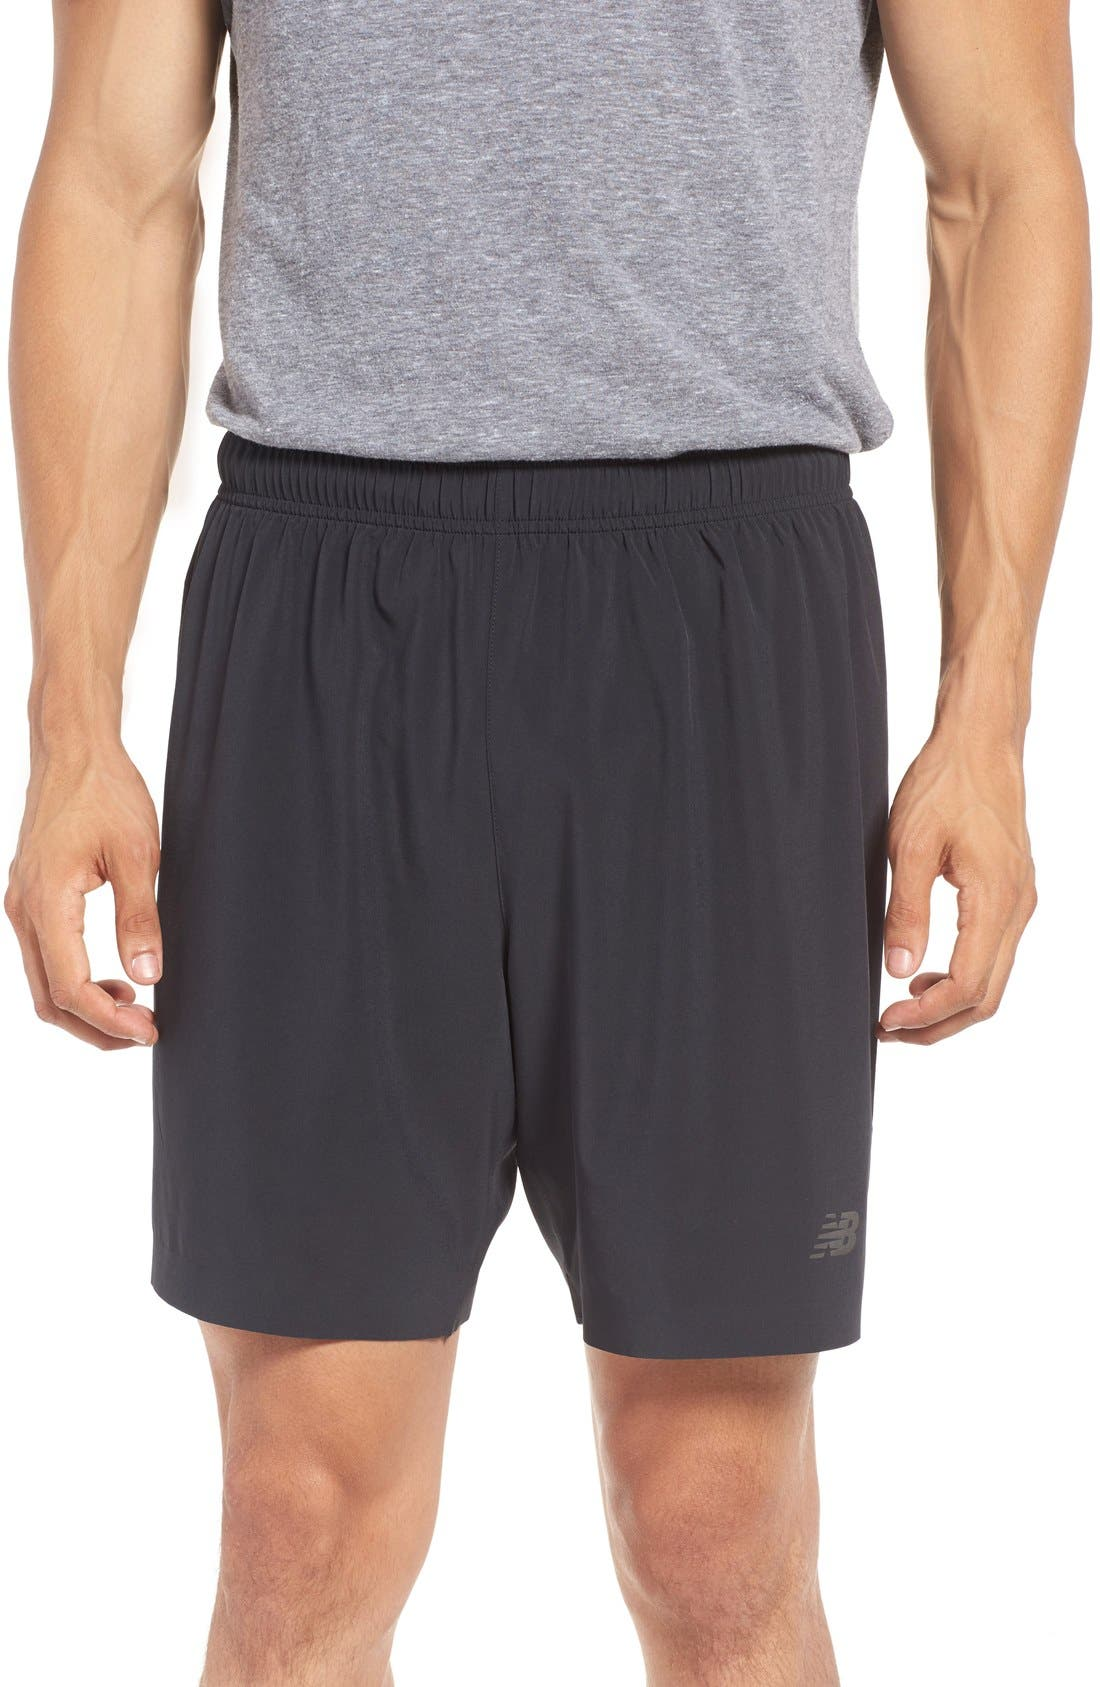 'Shift' Athletic Fit Training Shorts,                         Main,                         color, 001